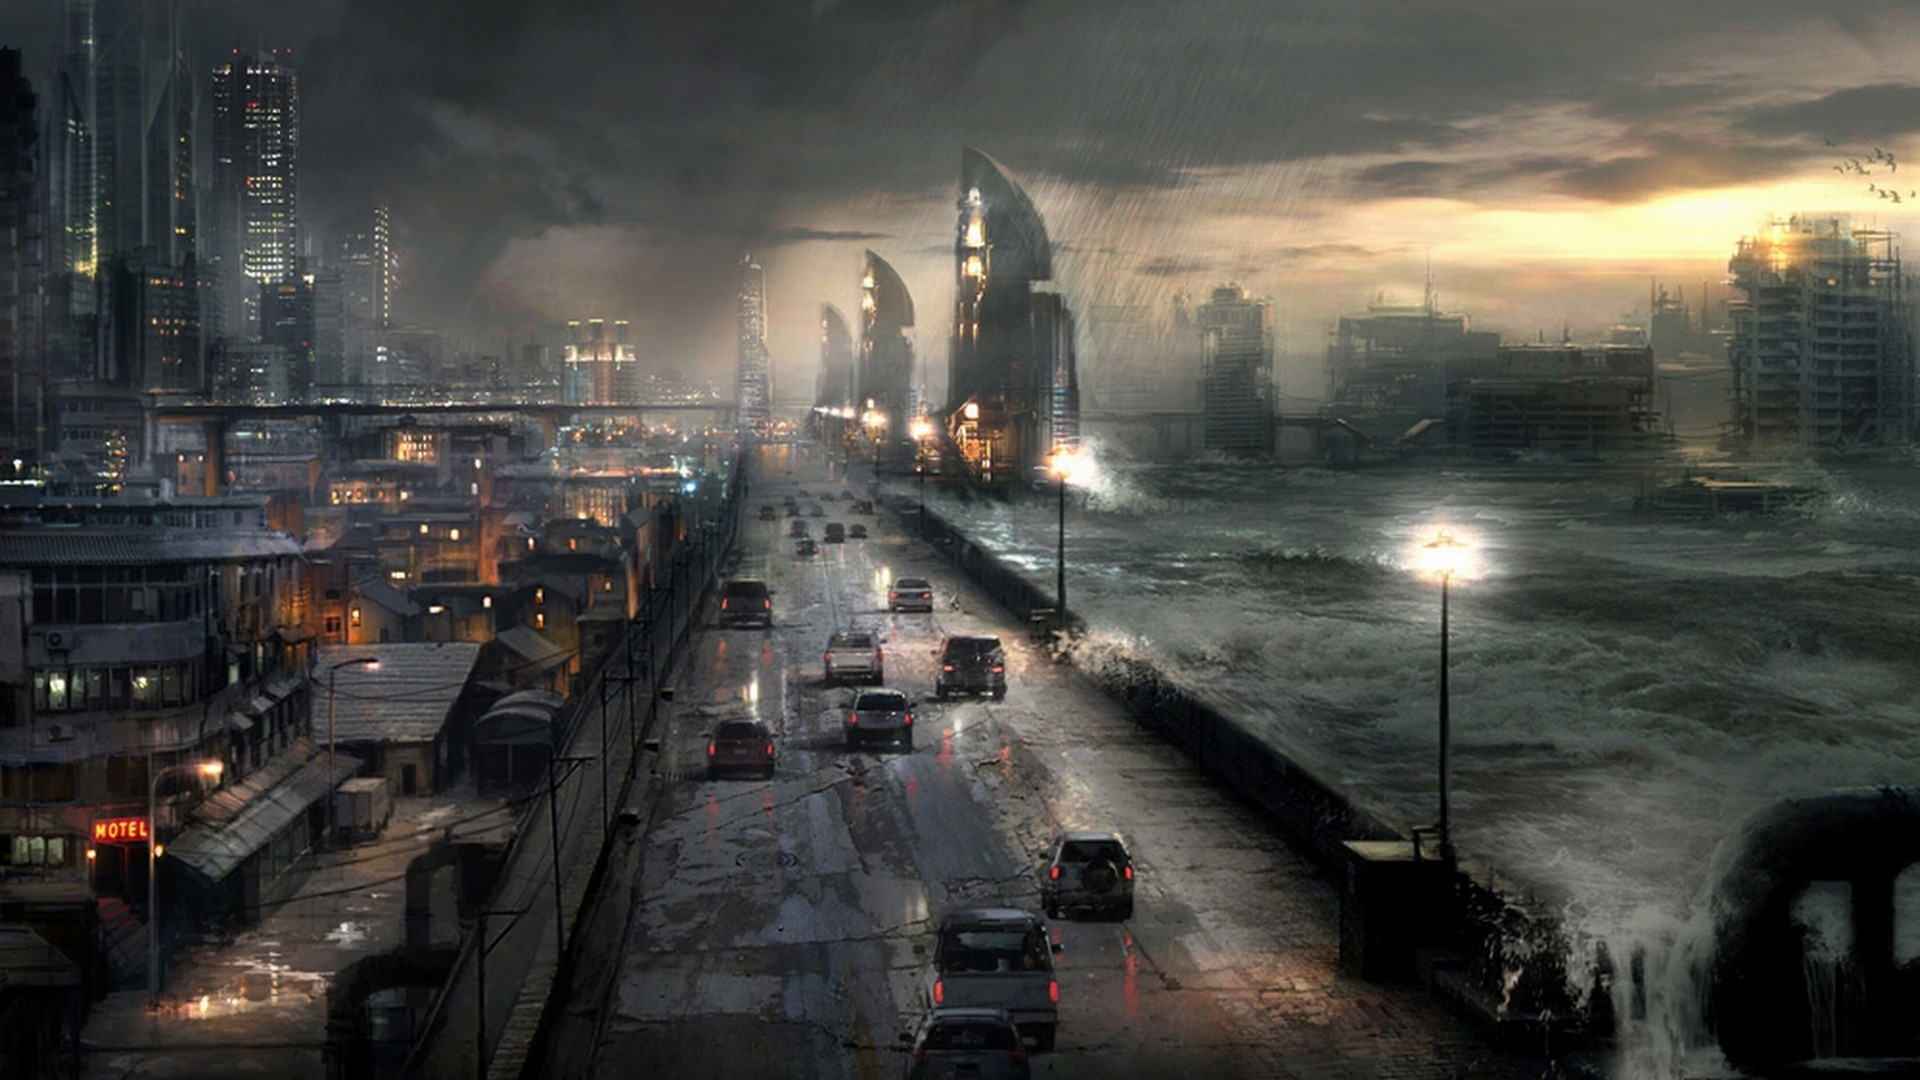 ruins cityscapes rain waves HD Wallpaper